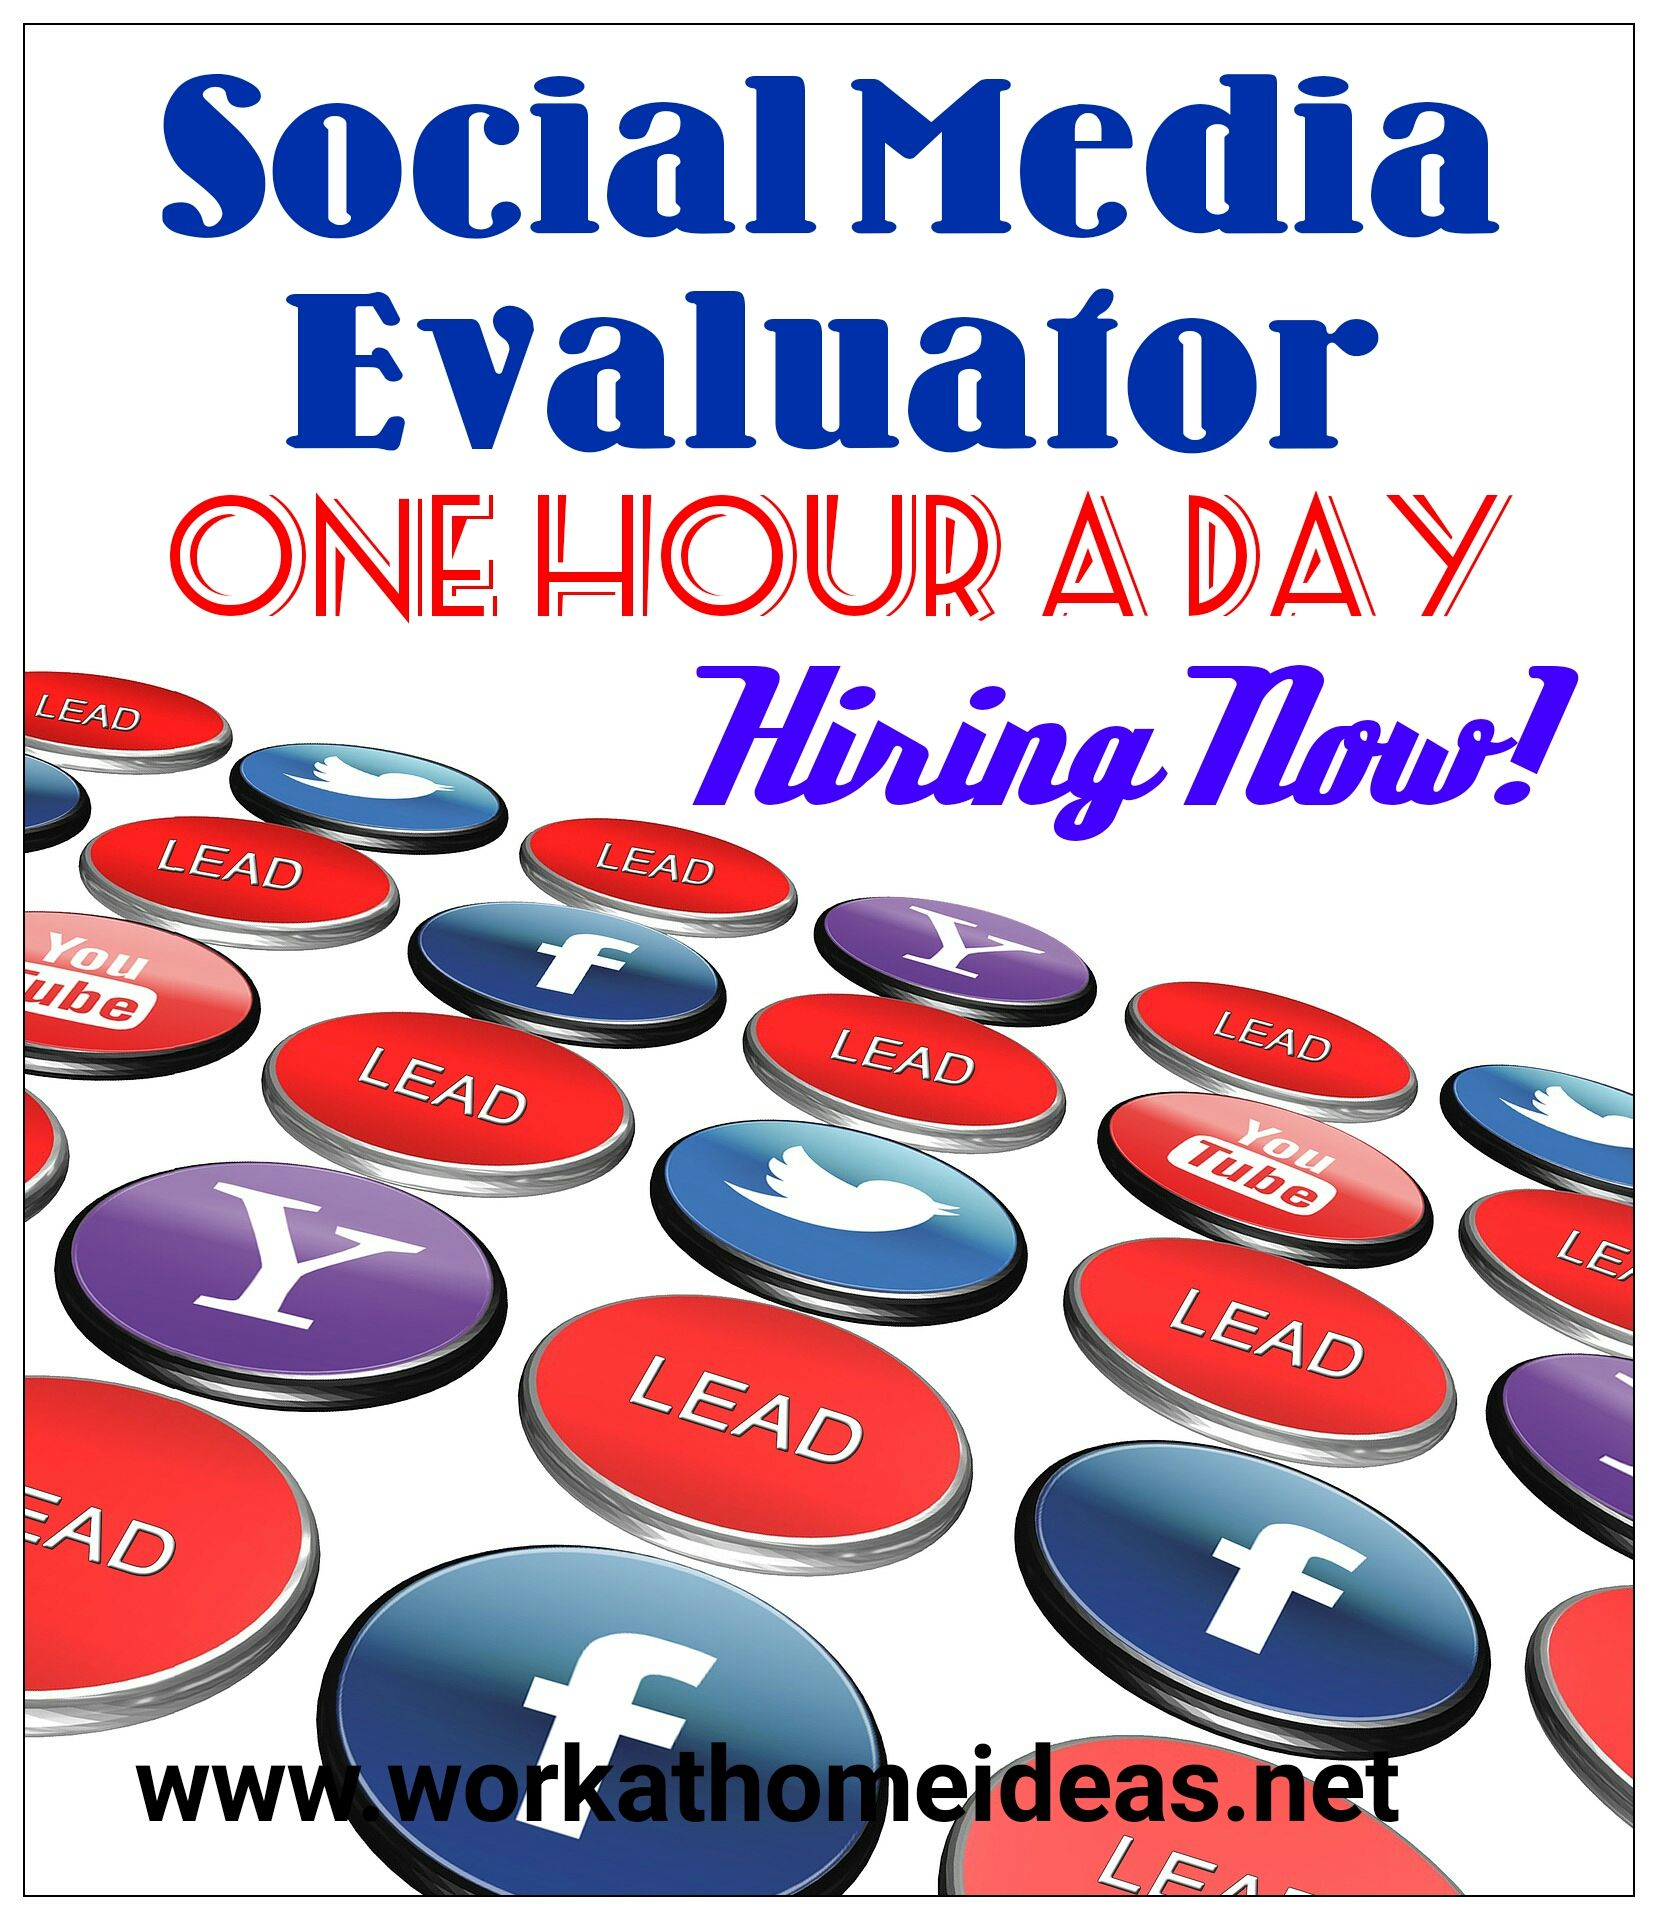 Appen This is an extra income opportunity for almost everyone reading this post. I am very familiar with Appen, and can heartily recommend this Social Media Evaluator position. Appen is looking for people who actively participate in one or more social media platforms. This role only requires one hour of your day, for five days …